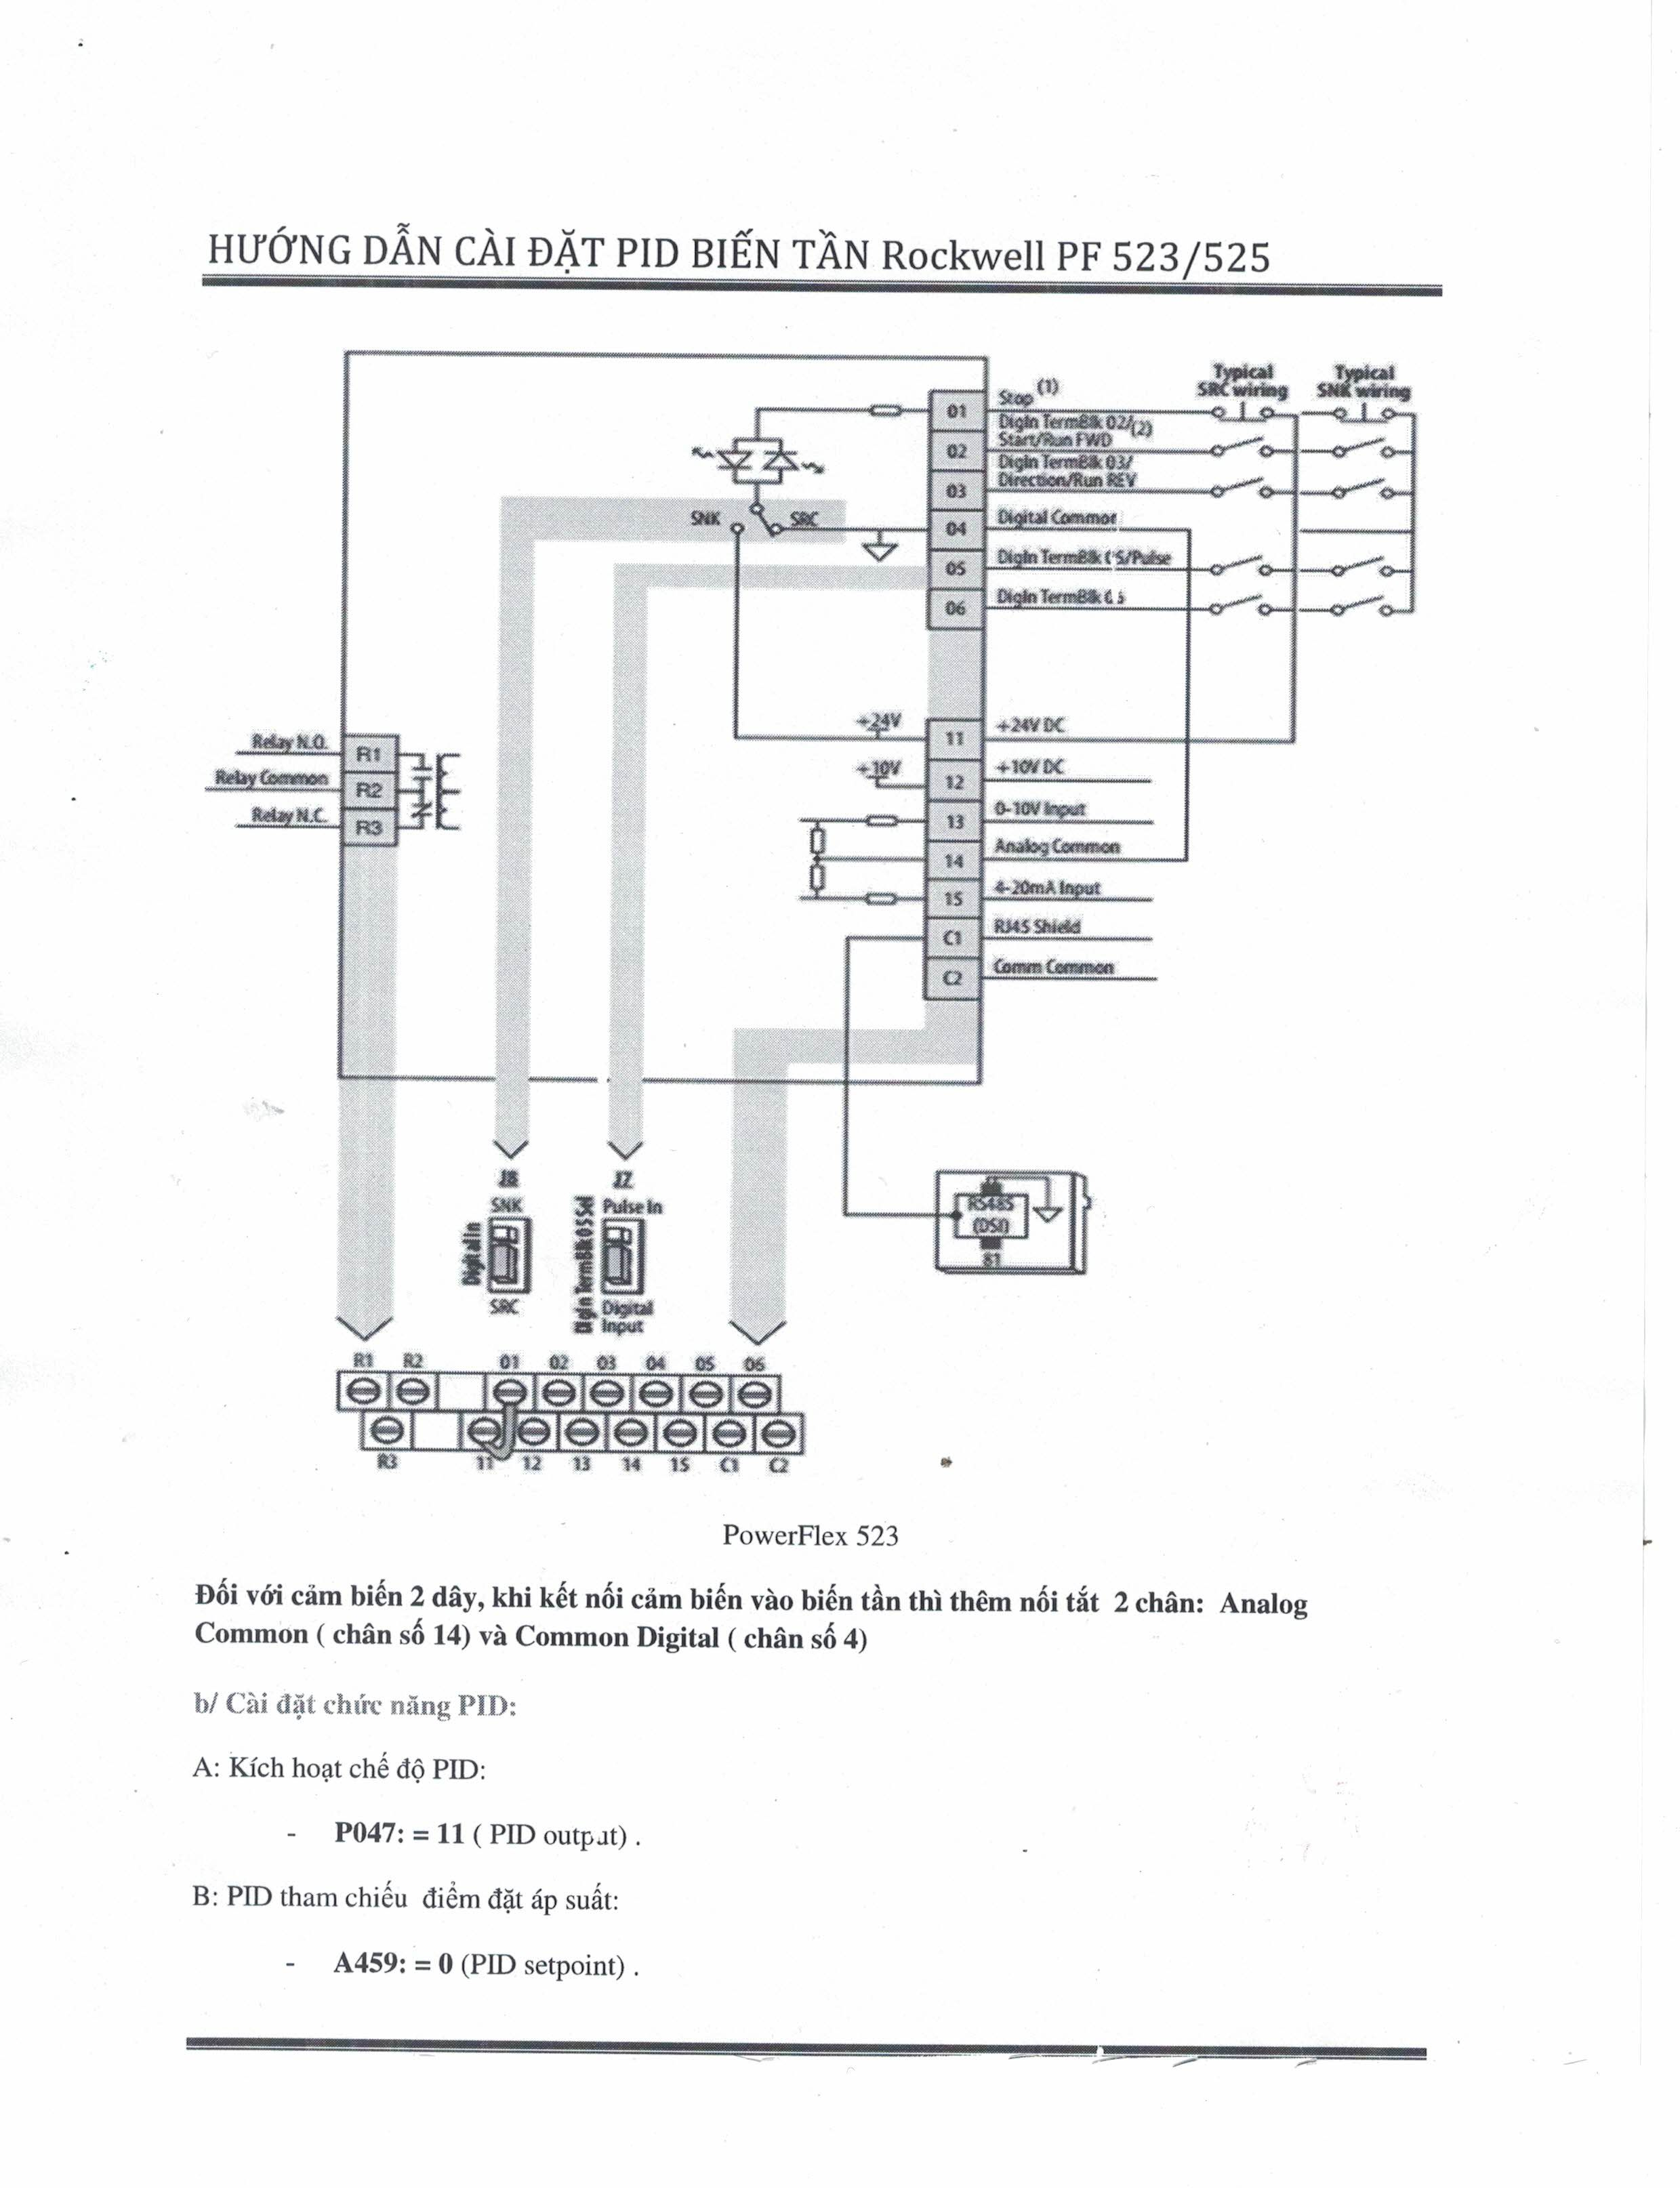 cc2e58a9c0d48d165d02a19a47d07a7f powerflex 523 wiring diagram allen bradley powerflex 523 \u2022 free Flex Fuel Sensor Wiring at n-0.co